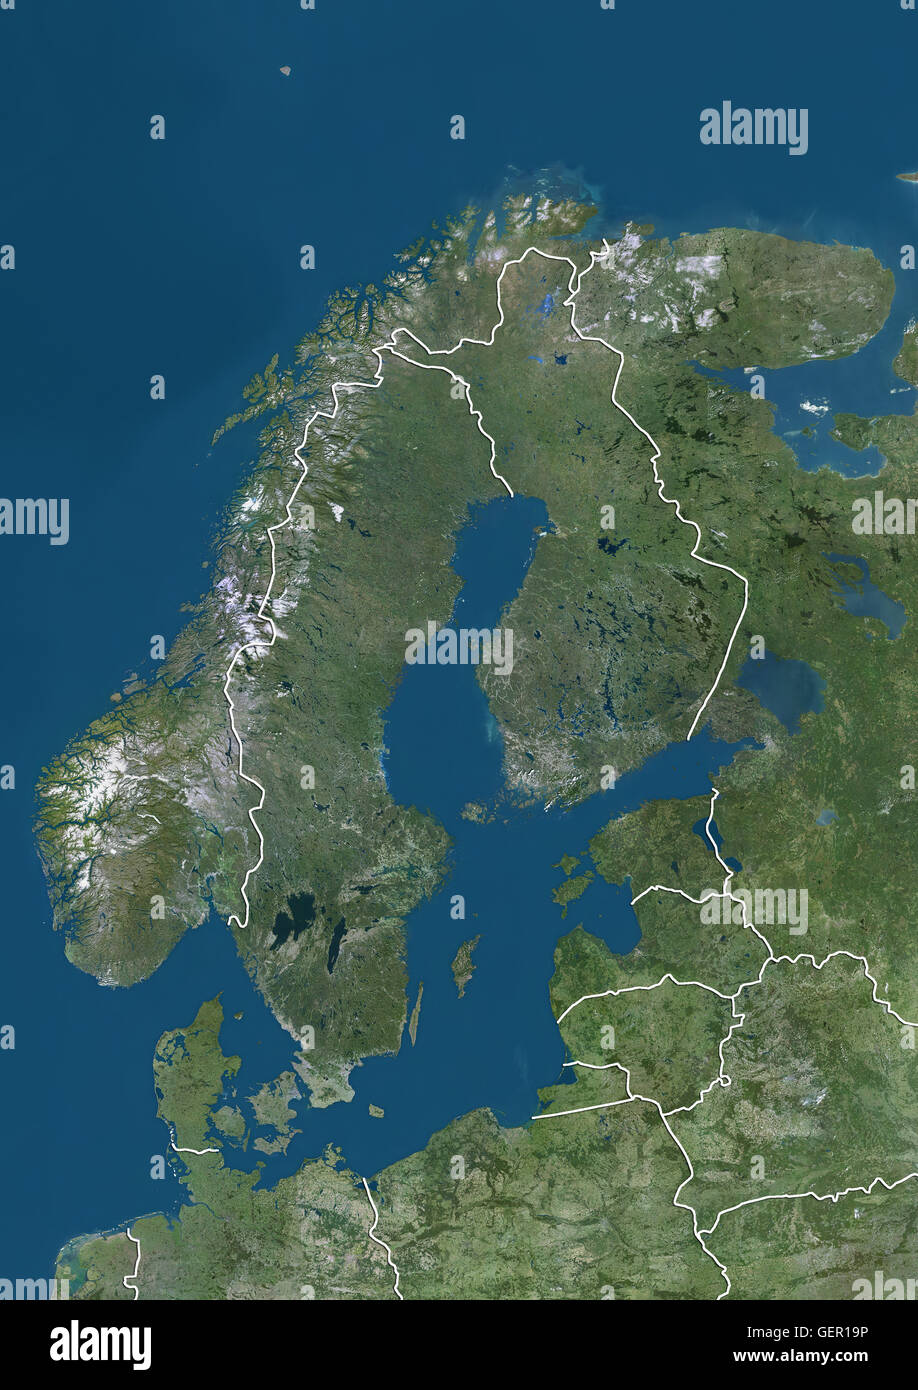 Satellite view of Northern Europe showing Scandinavia and the Baltic States (with country boundaries). This image Stock Photo